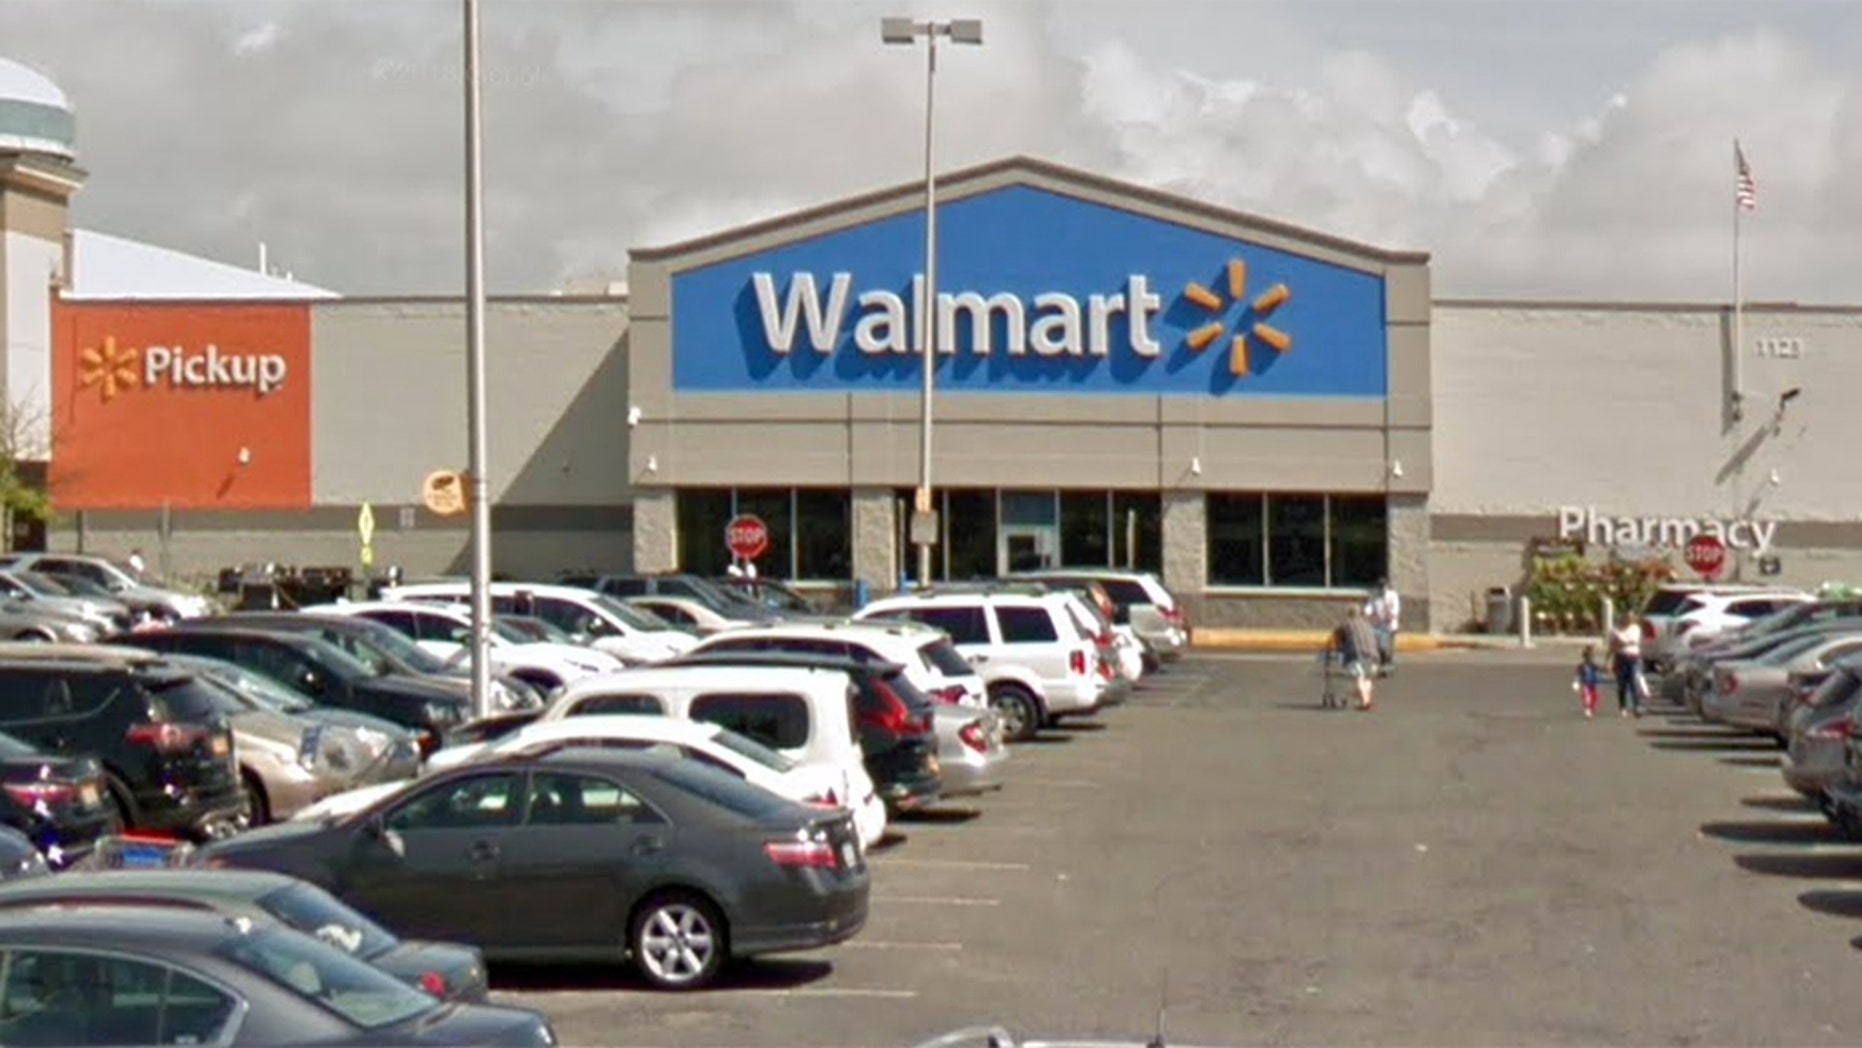 The holiday deteriorate expected got a tiny brighter for some Walmart shoppers in New York after an unclear sold lonesome a costs of all of a equipment on layaway, a store revealed.